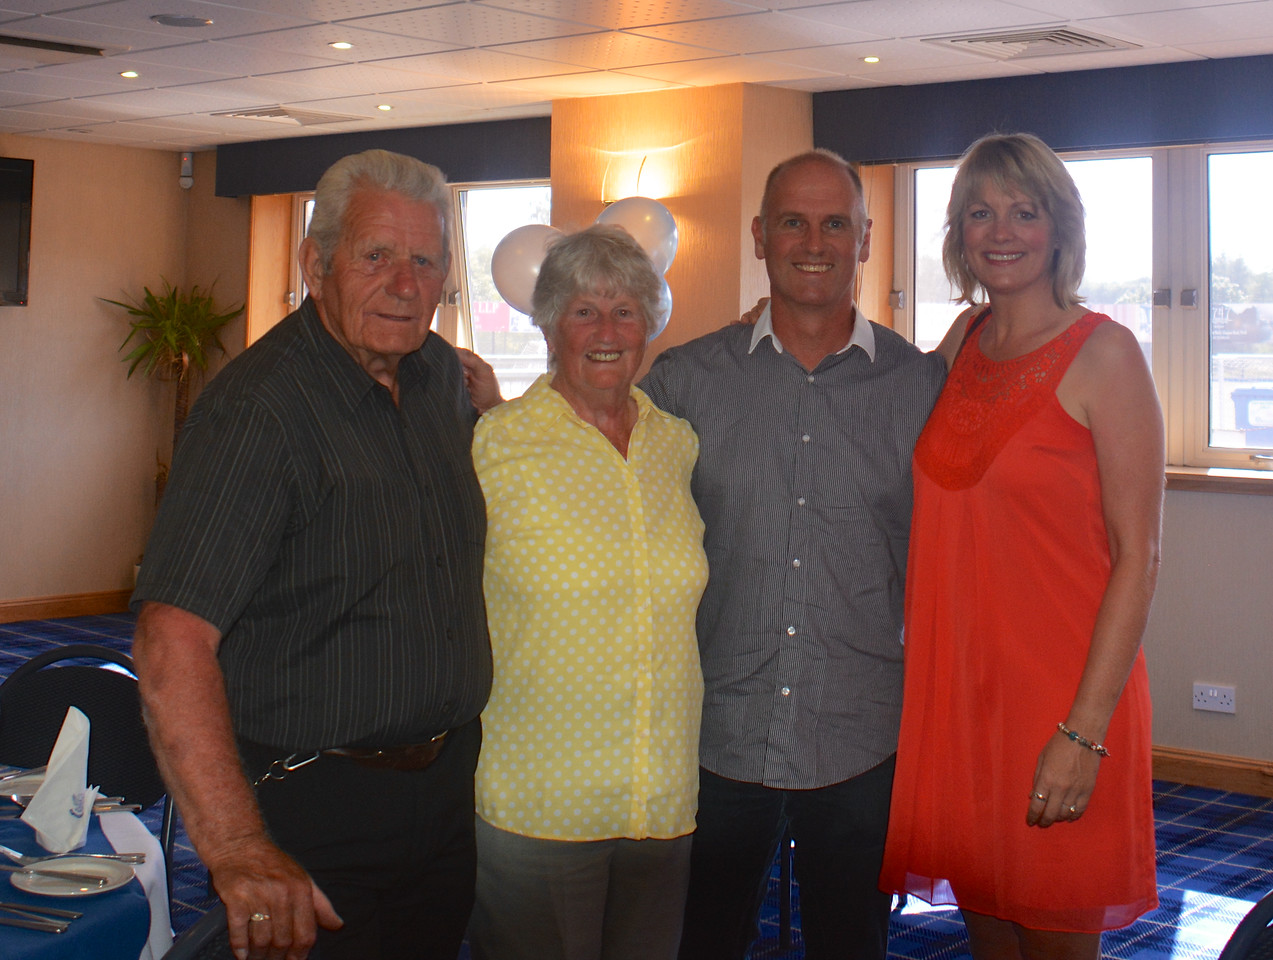 Eddie Janet Brian Jan Scotland Granny Grandad Golden Wedding July 2014